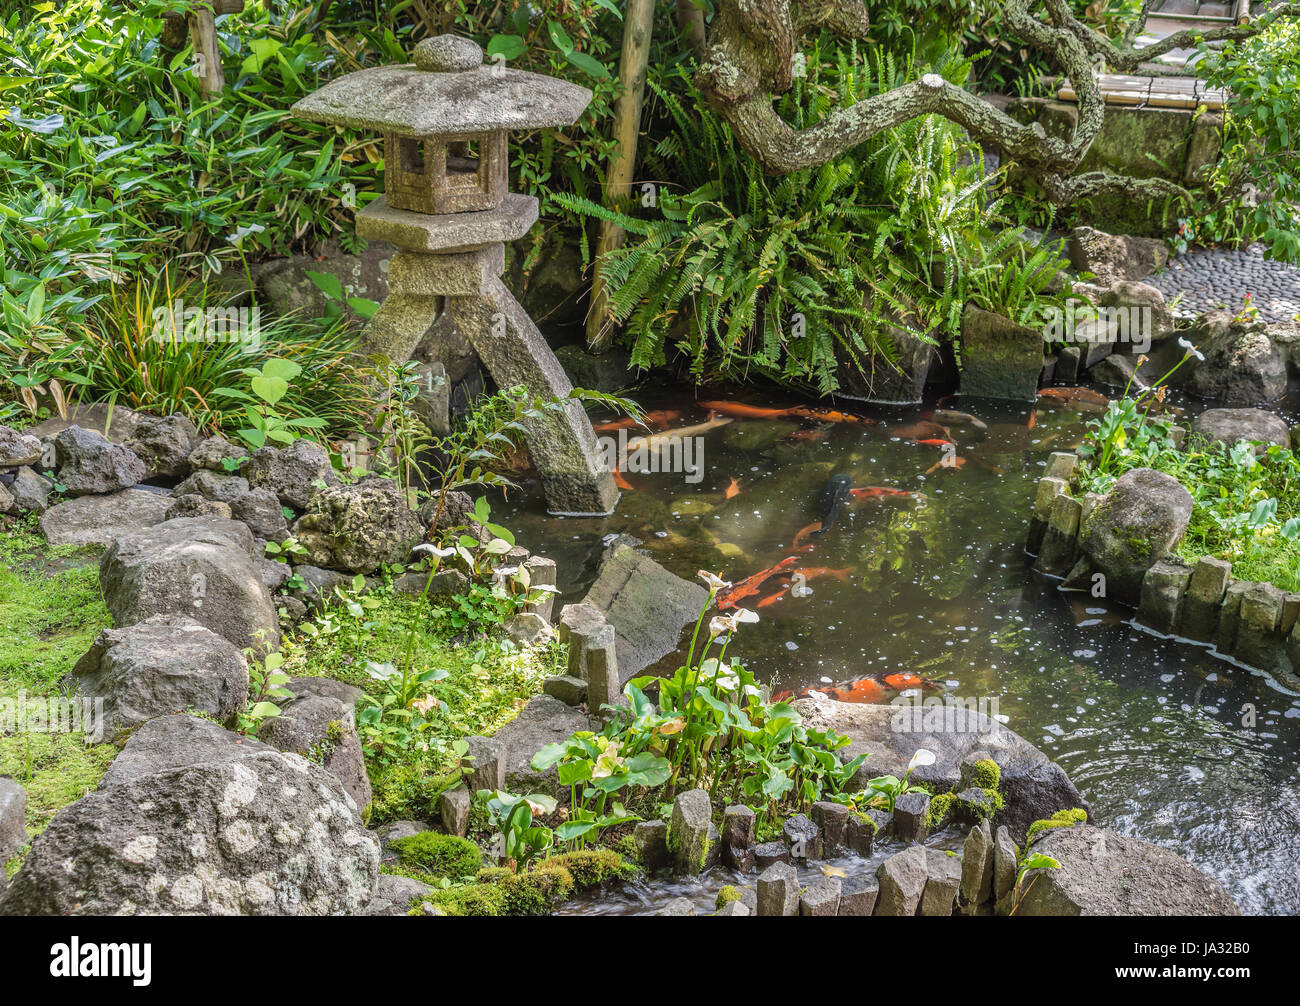 Koi pond at the garden of the Hase-dera temple, commonly called the Hase-kannon, one of the Buddhist temples in - Stock Image